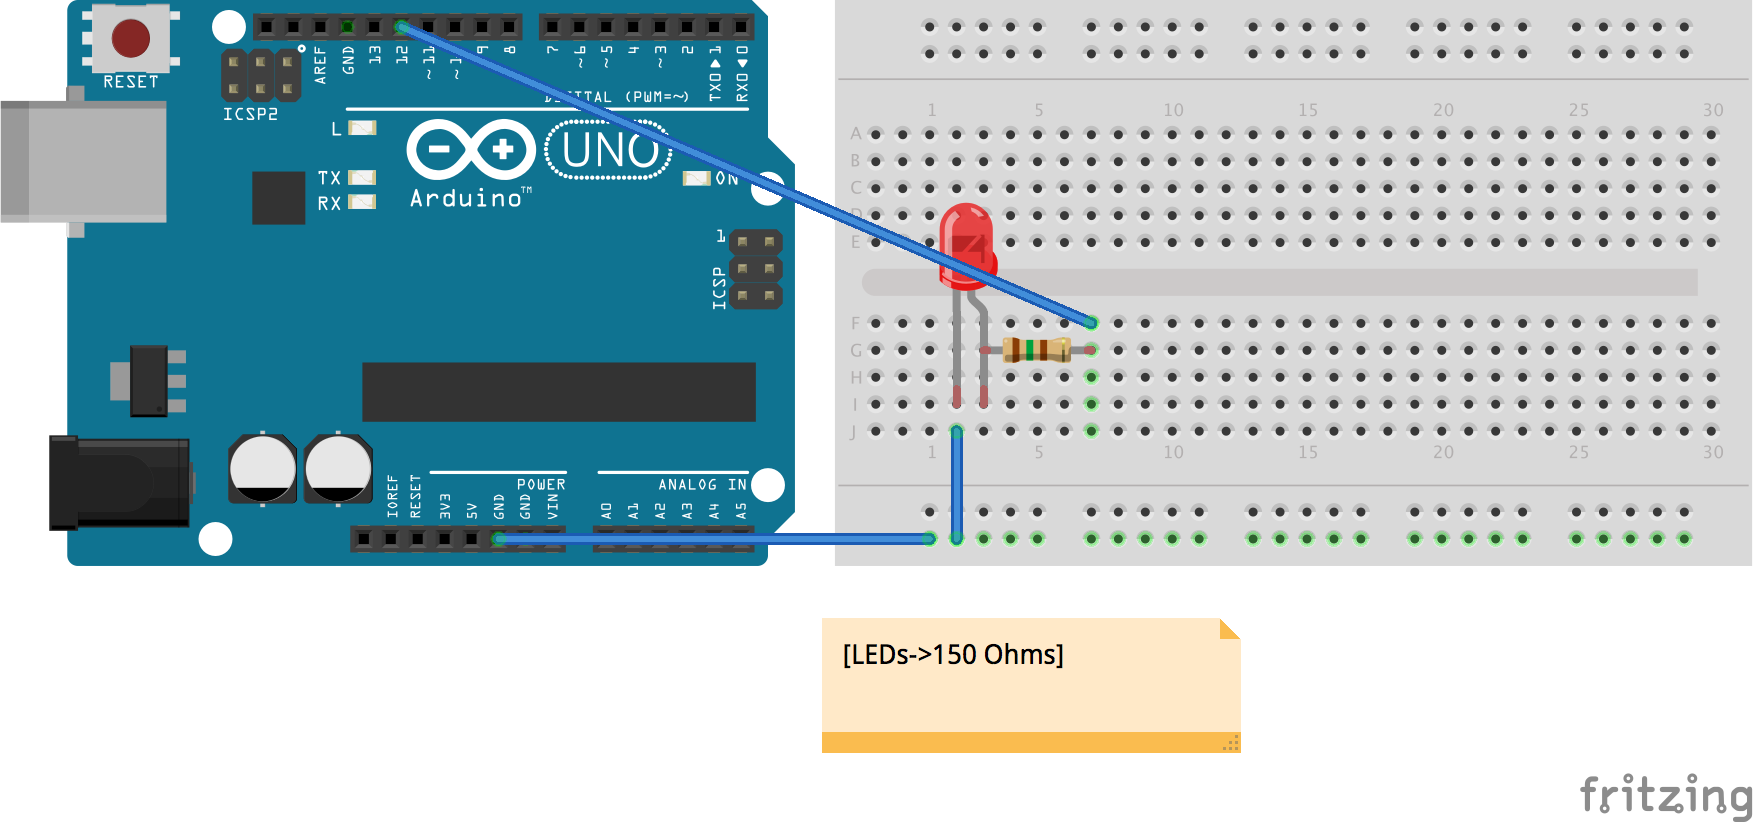 01 Create Your Own Circuit The Definition Of Passive Components Are Electronic That If Repeat Same Operation As In 1 We Want To Independently Control Each Led Will Connect Them A Different Pin So Have